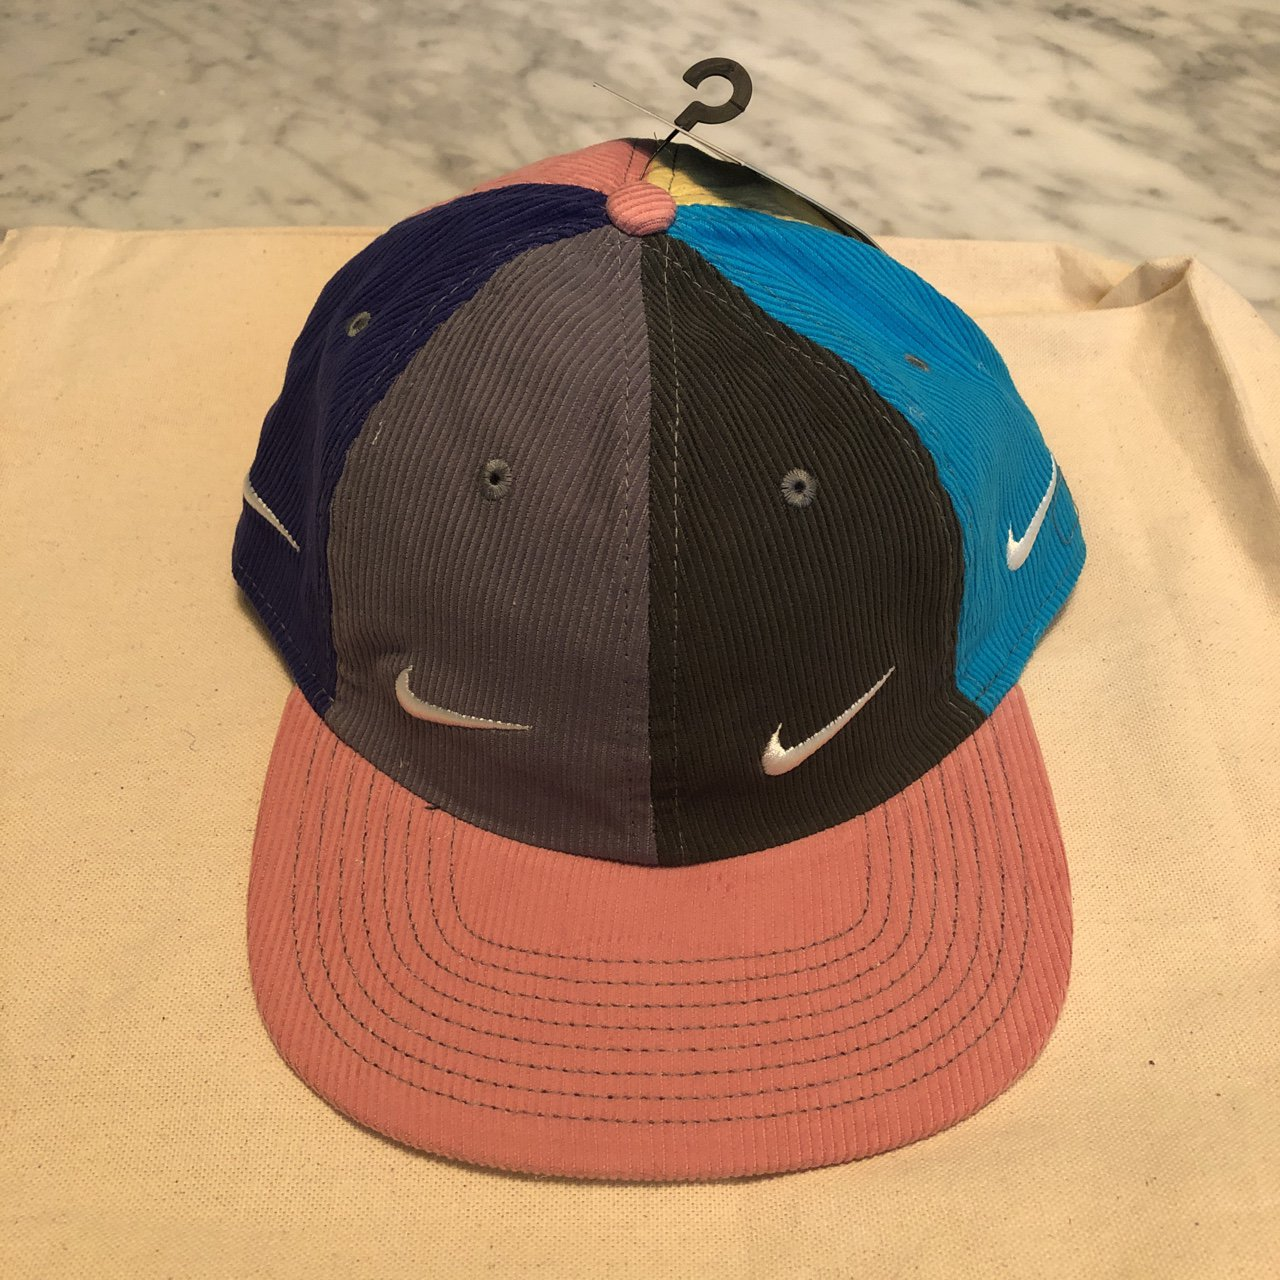 Nike Sean Wotherspoon 1 97 Hat (Multi) Brand new - never - - Depop 154f496bbf7